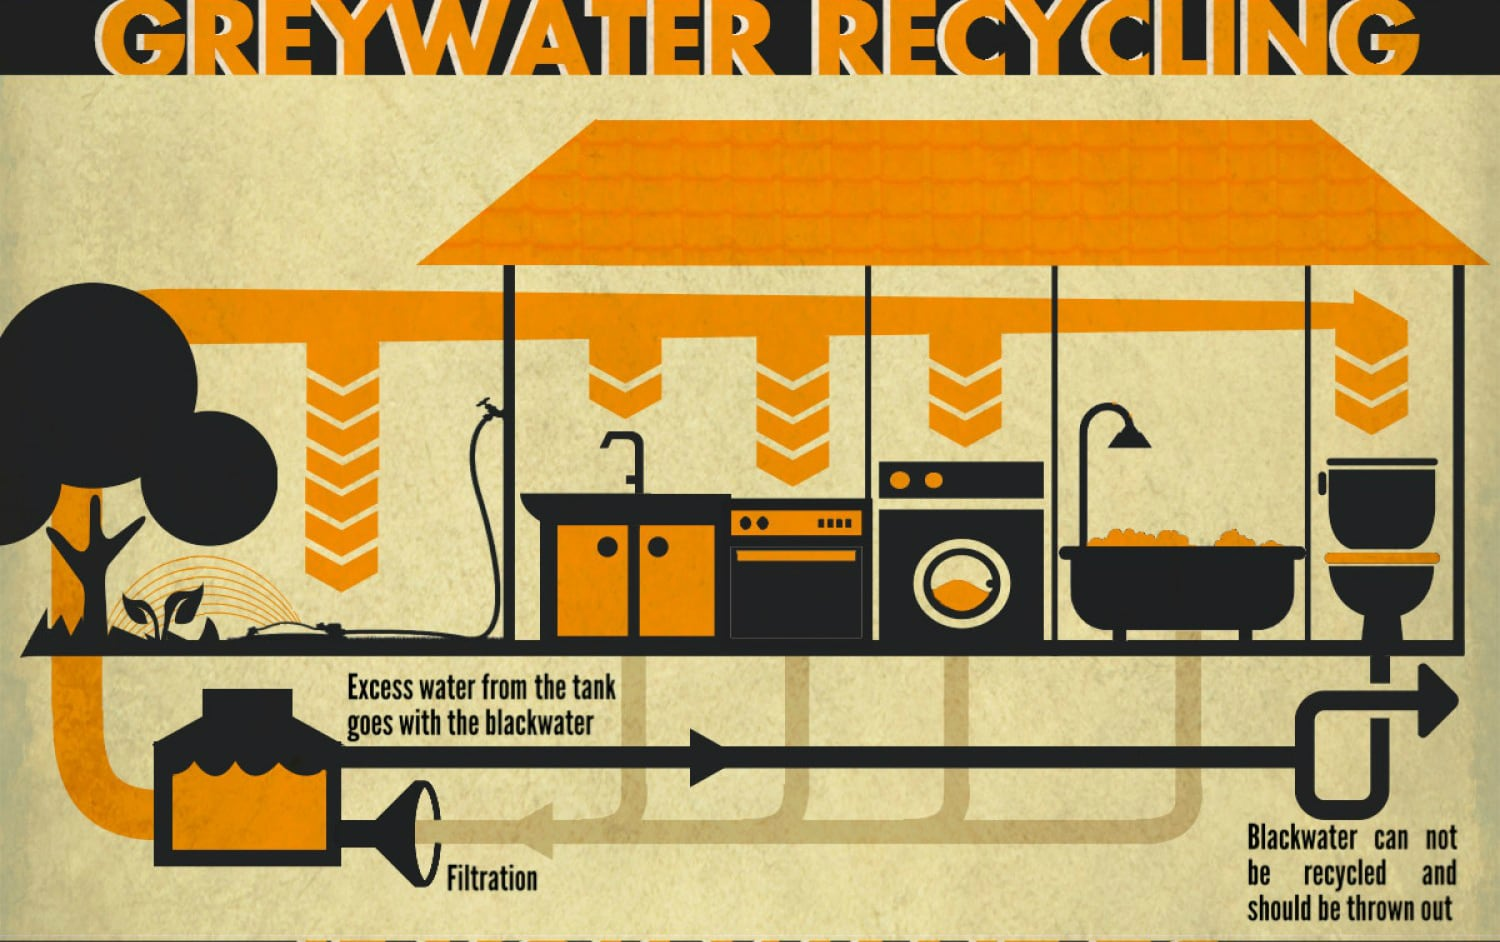 Grey water recycling scheme